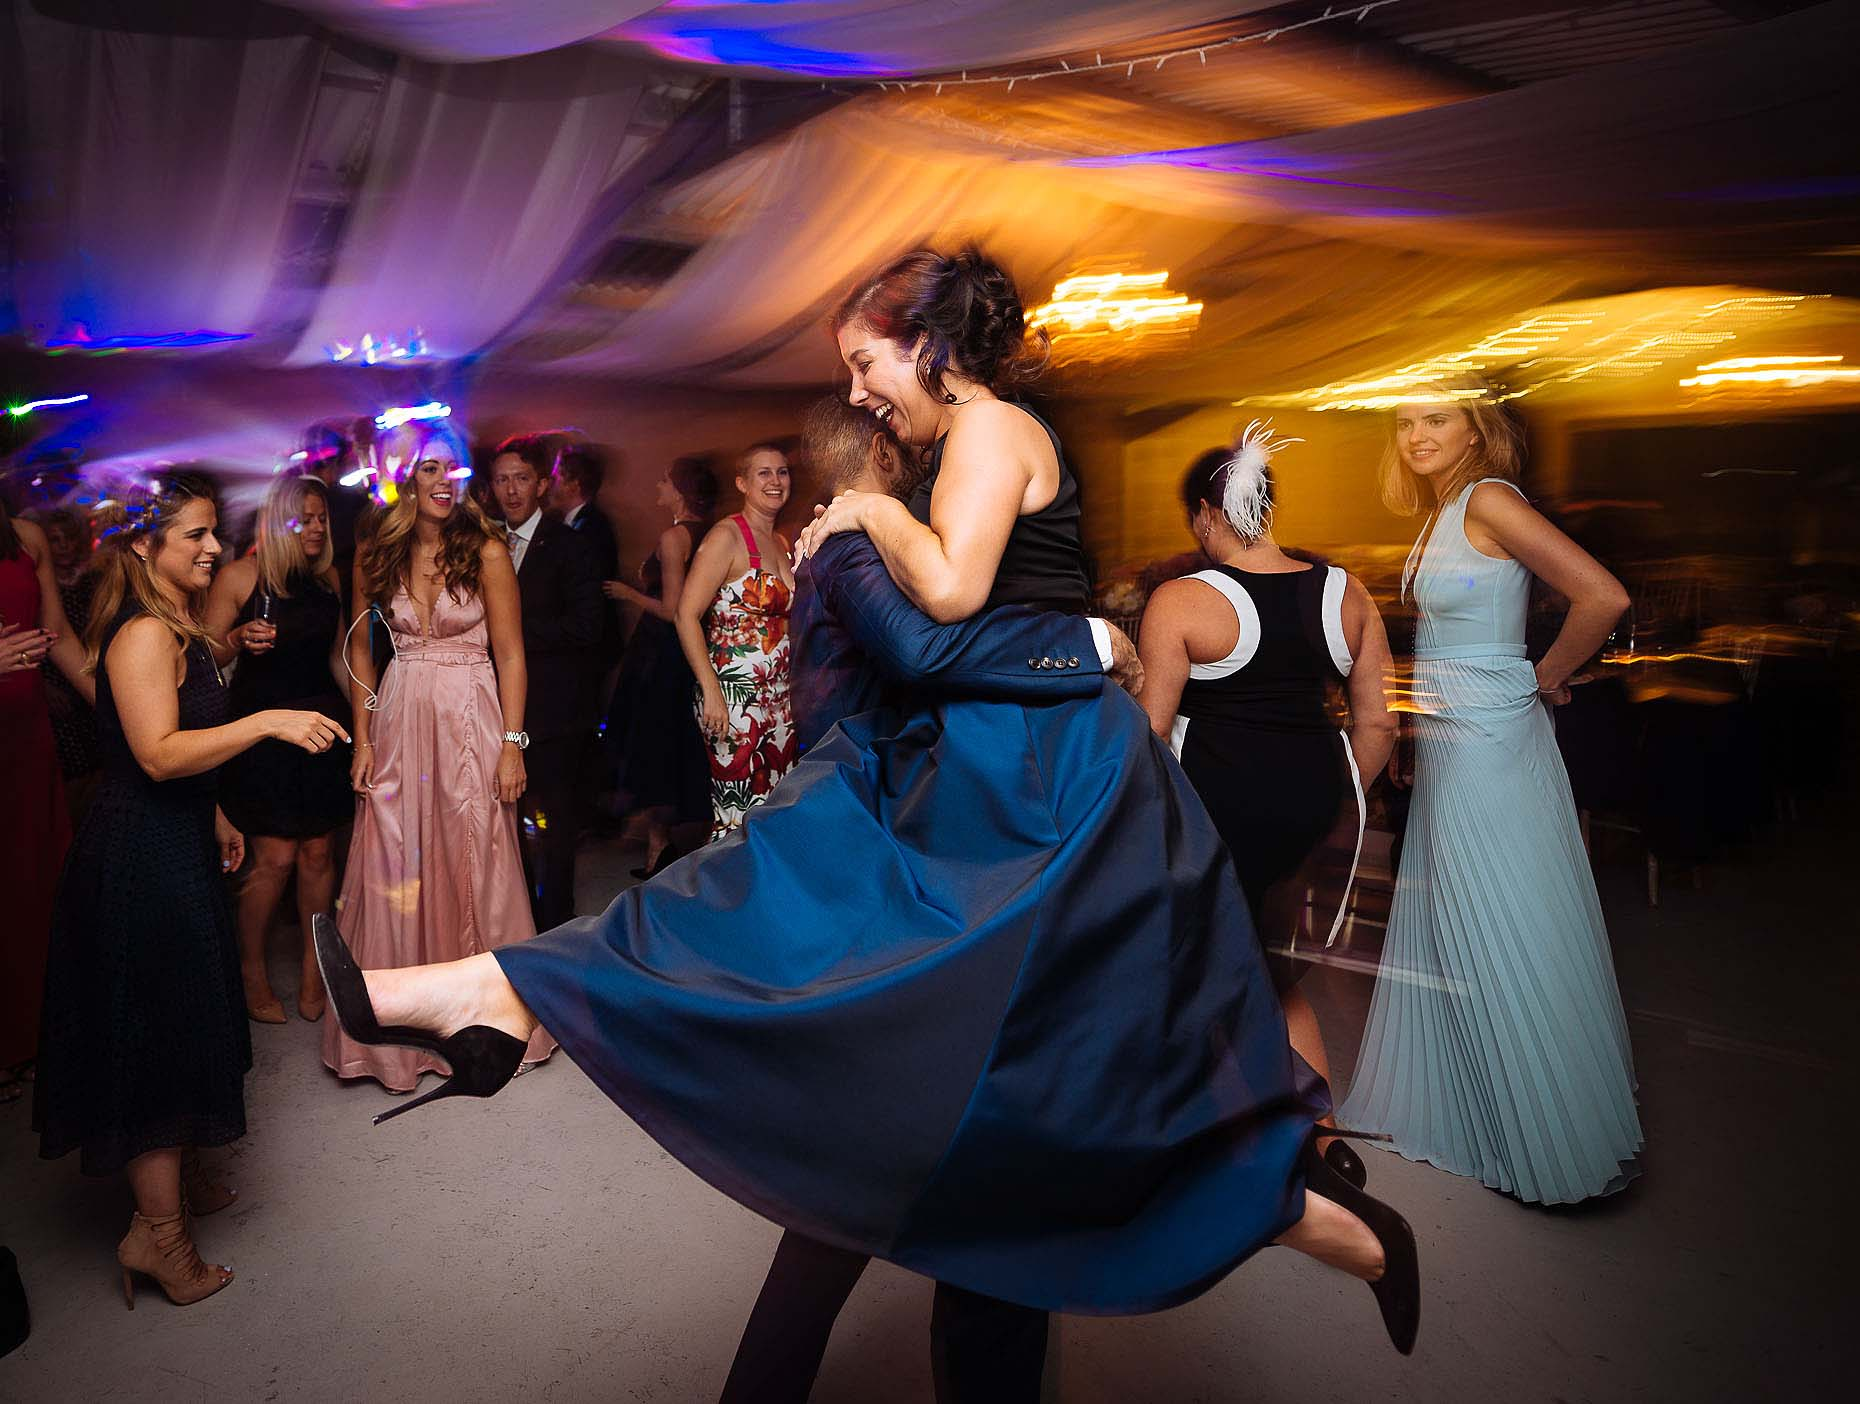 guests-dancefloor-night-motion-slow-sync-flash-technique-wedding-photography-26